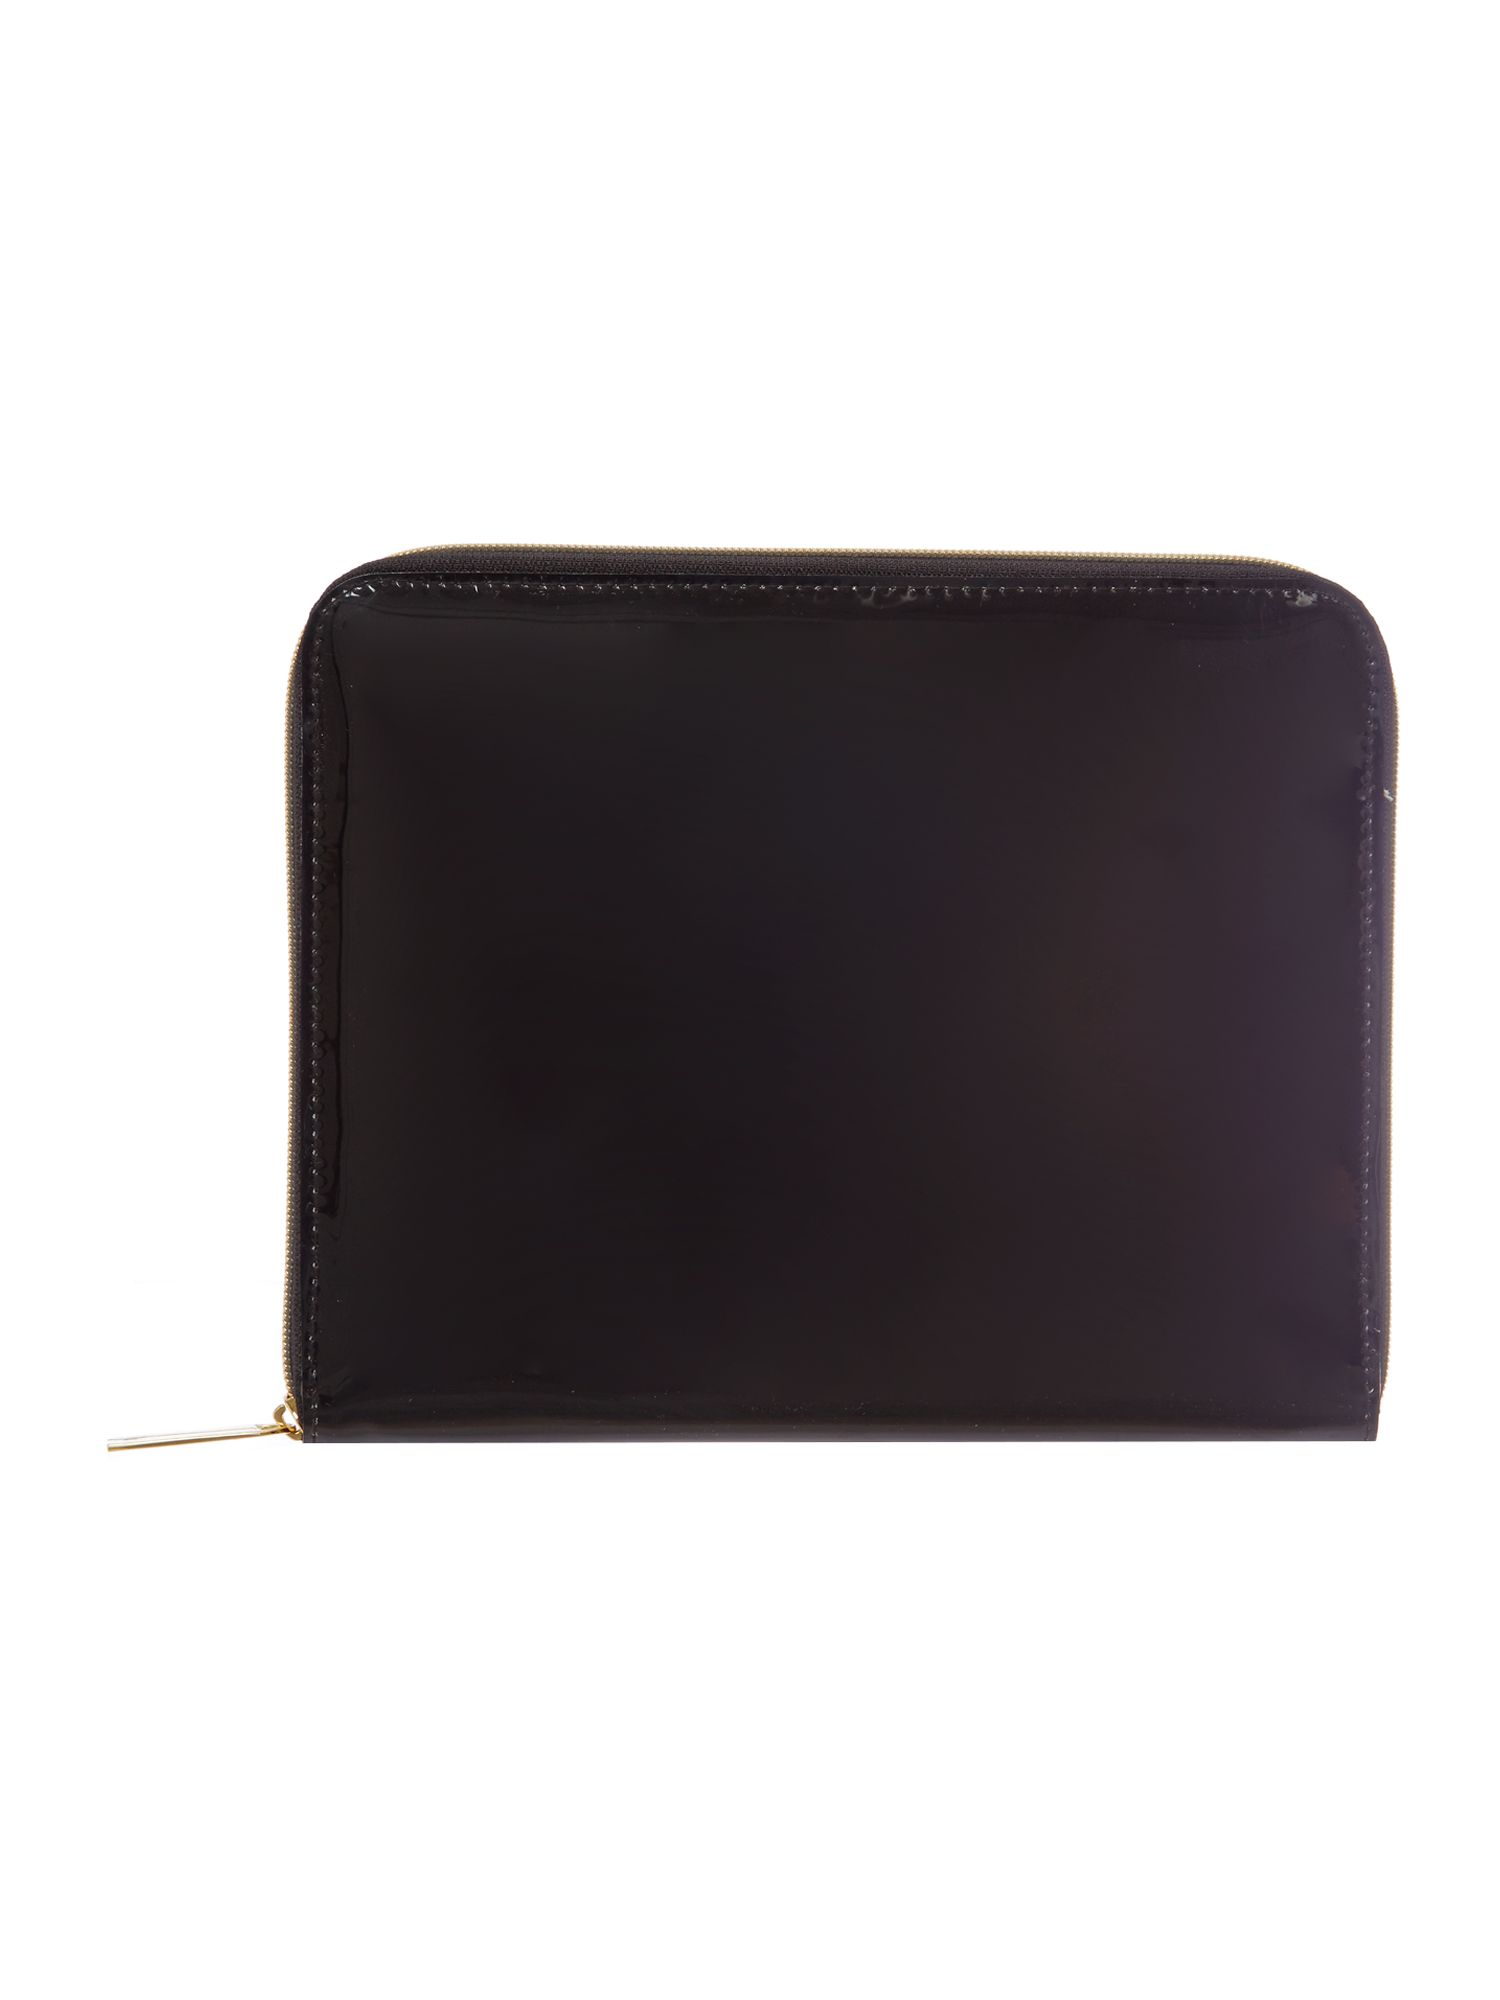 Black bow weave ipad case